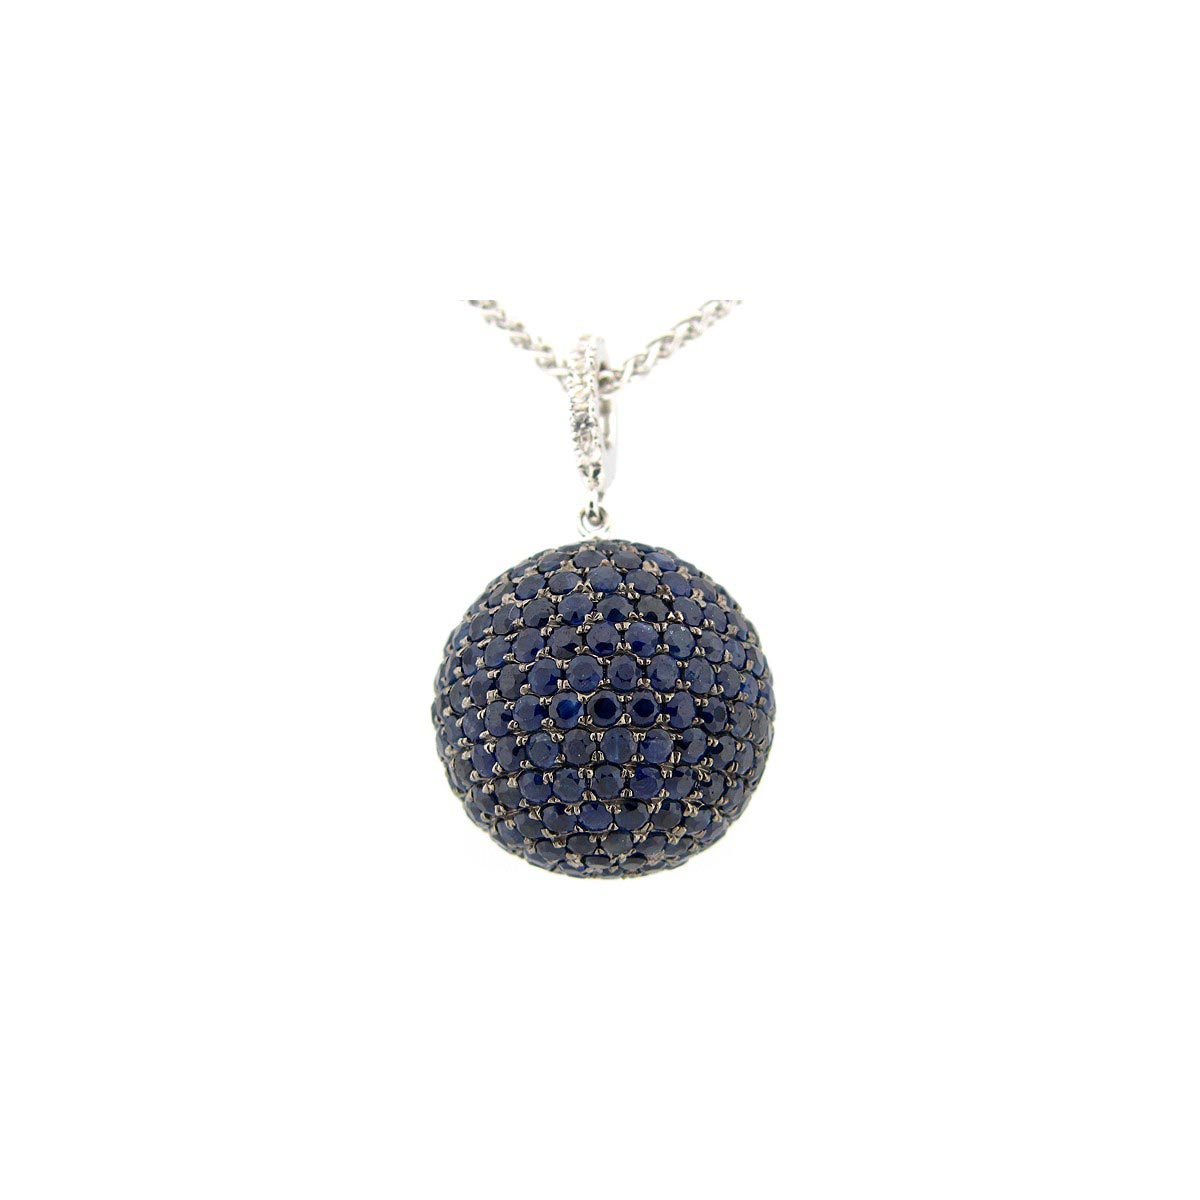 17MM Blue & White Sapphire Ball Pendant with a 20 Chain